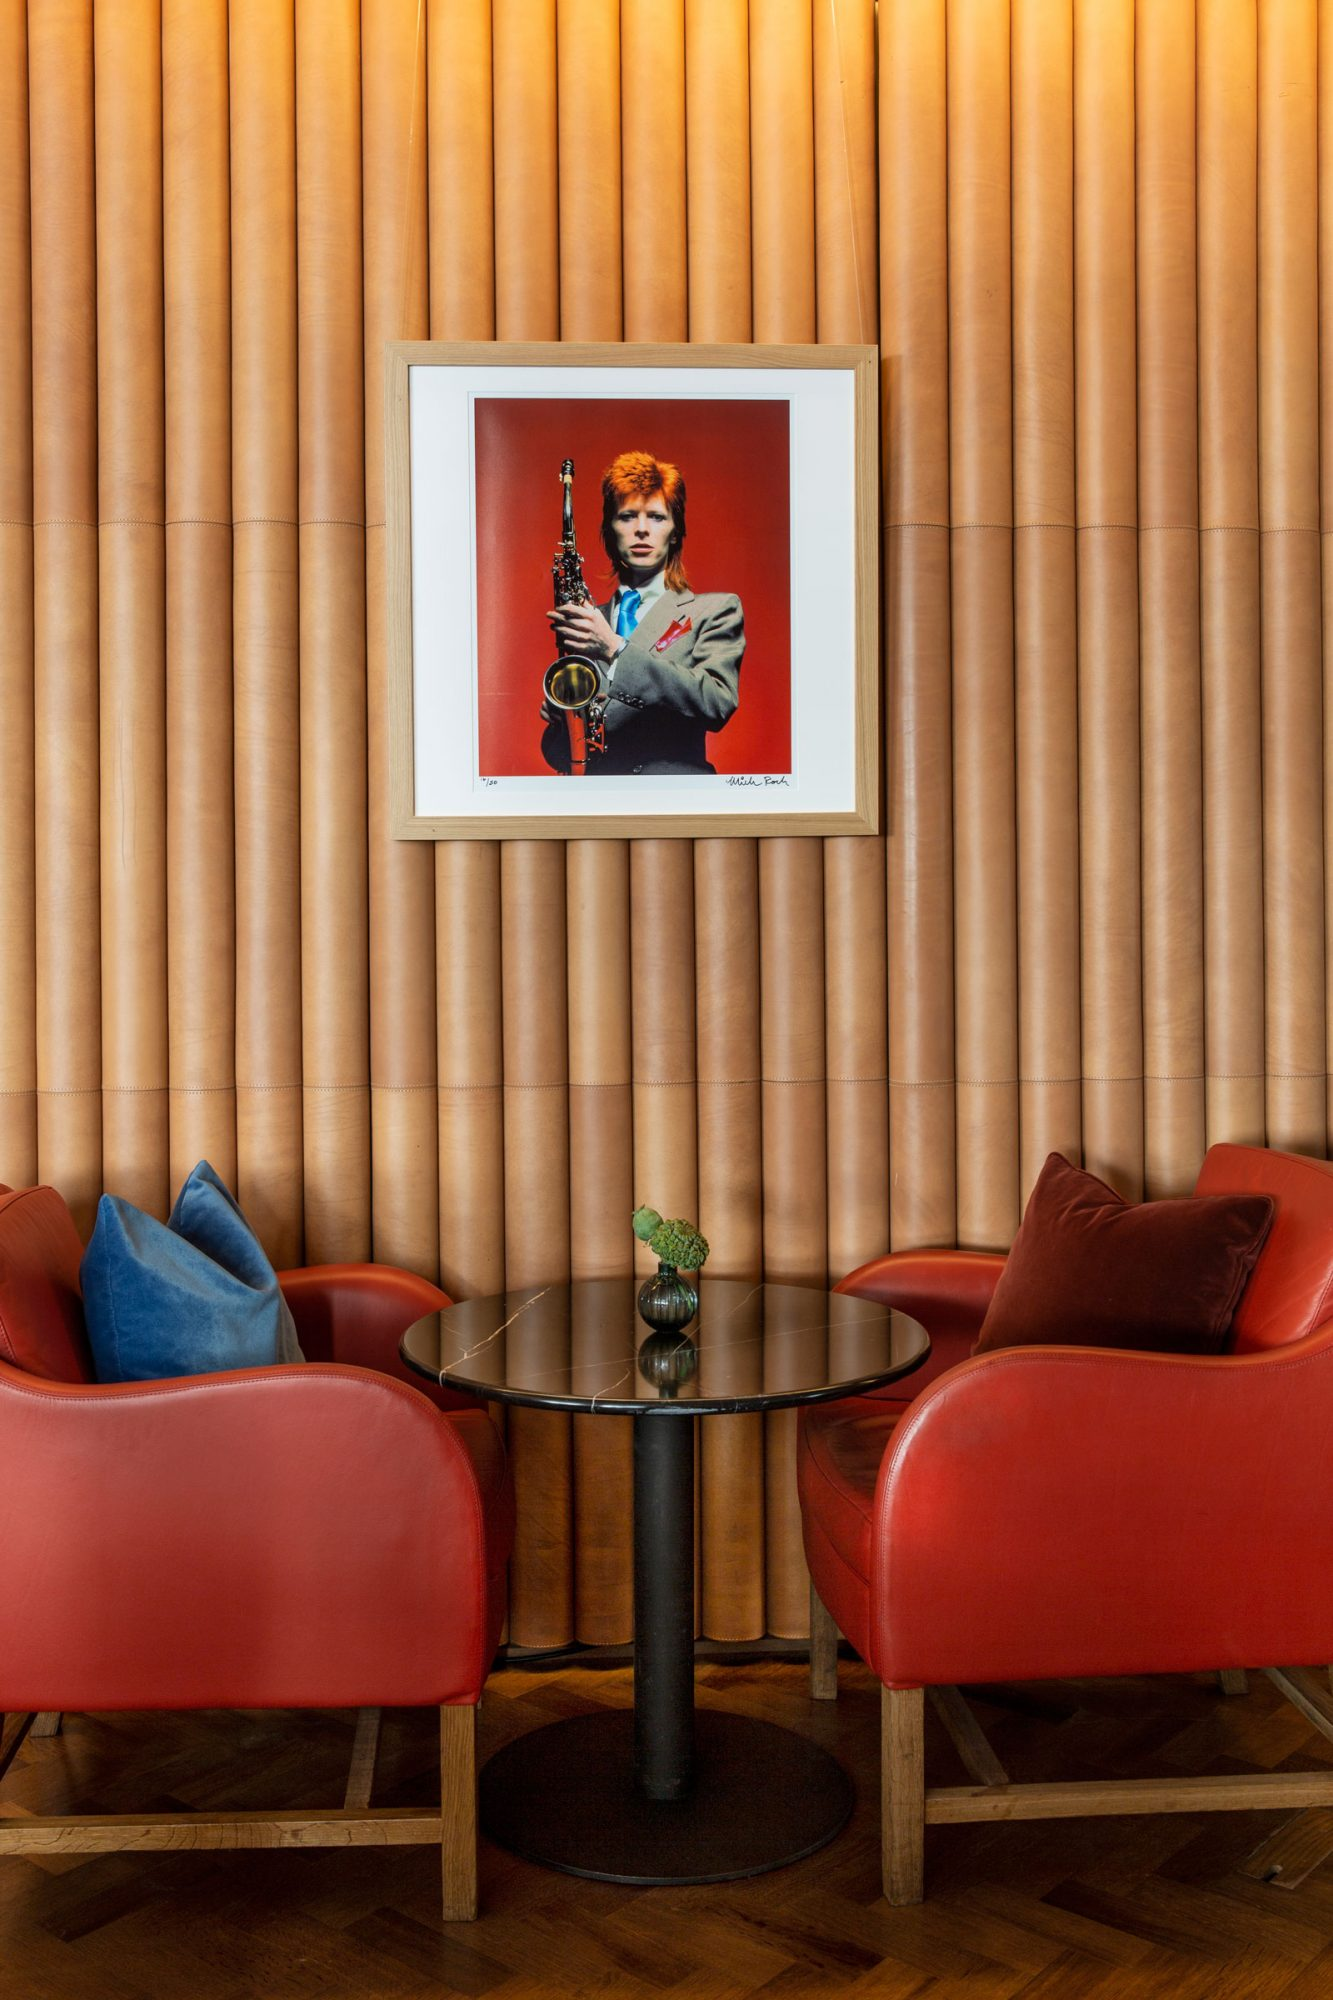 david-bowie-ziggy-stardust-bar-interior-XL-BLOG0818.jpg